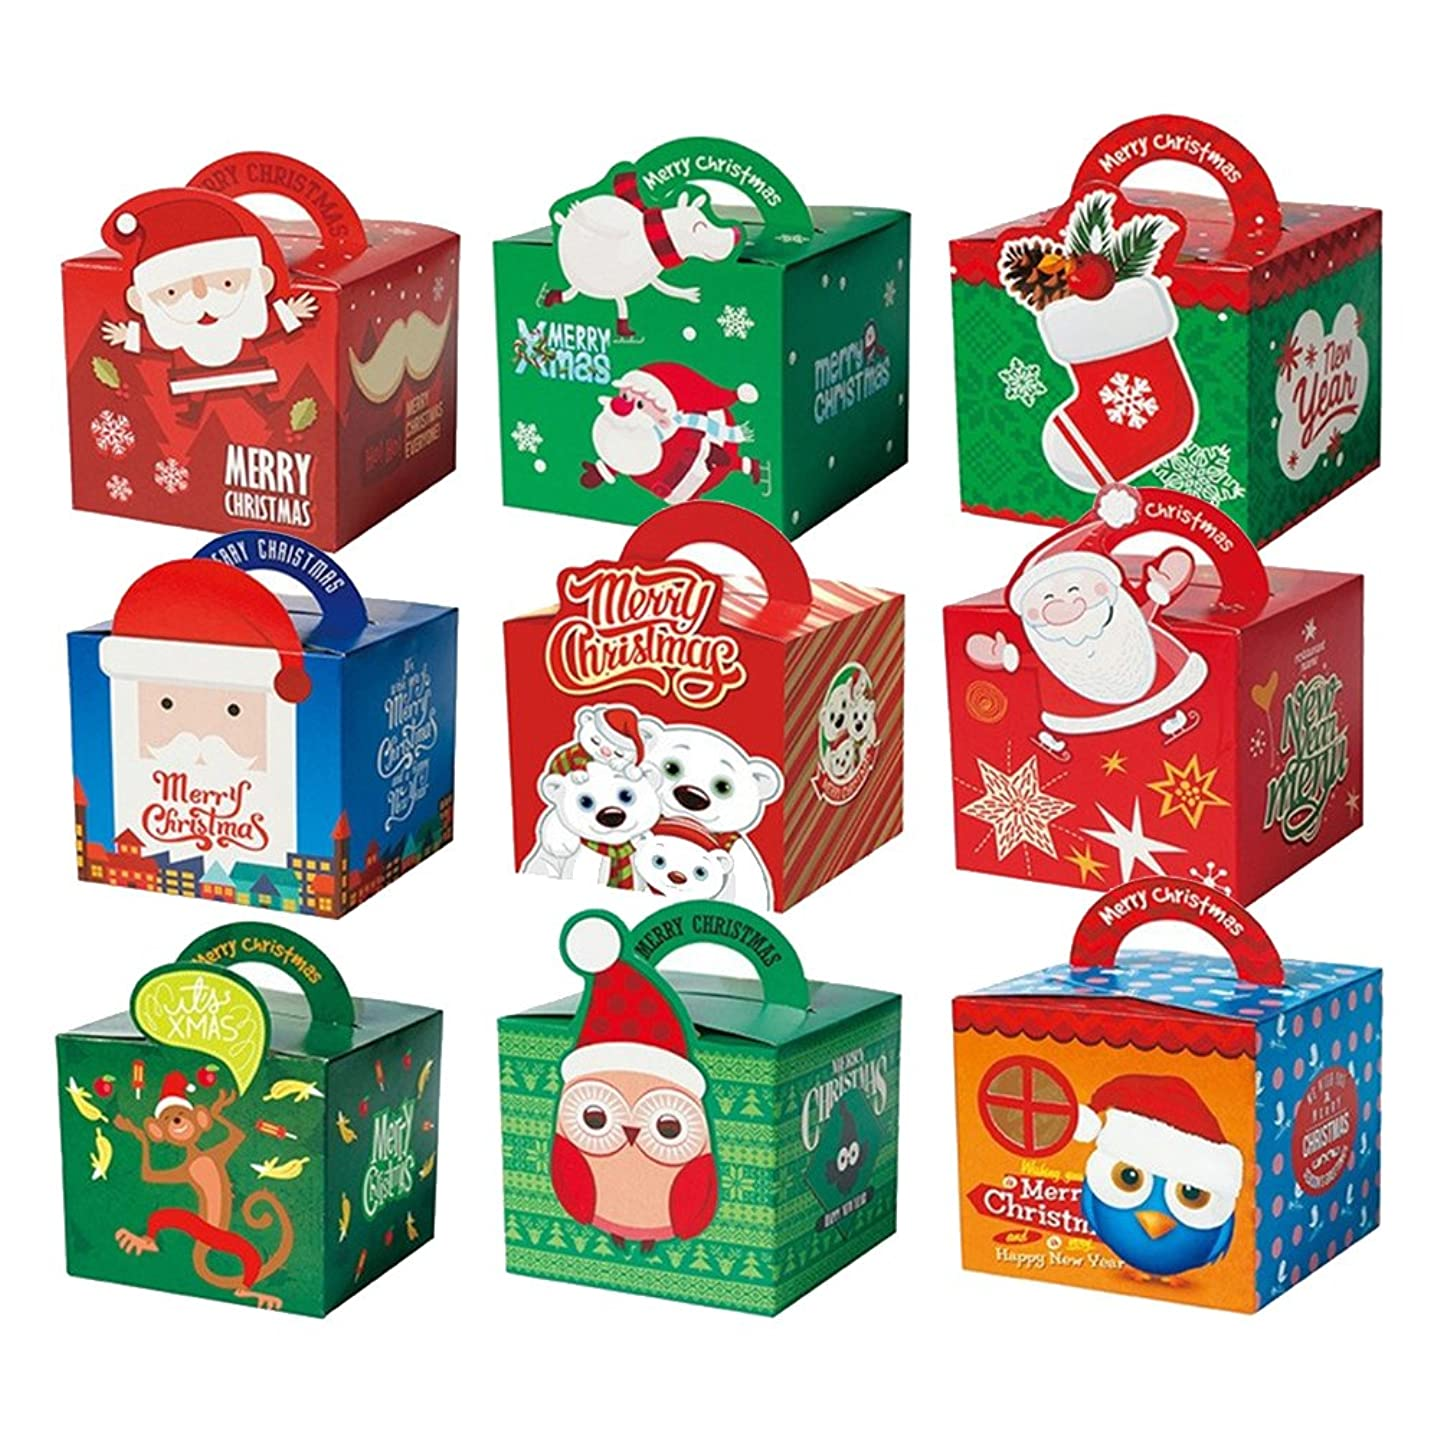 Christmas Gift Boxes Candy Box Party Favor Christmas Eve Box Xmas Party Bags Gift,12 Piece Pack (3D Style 1)